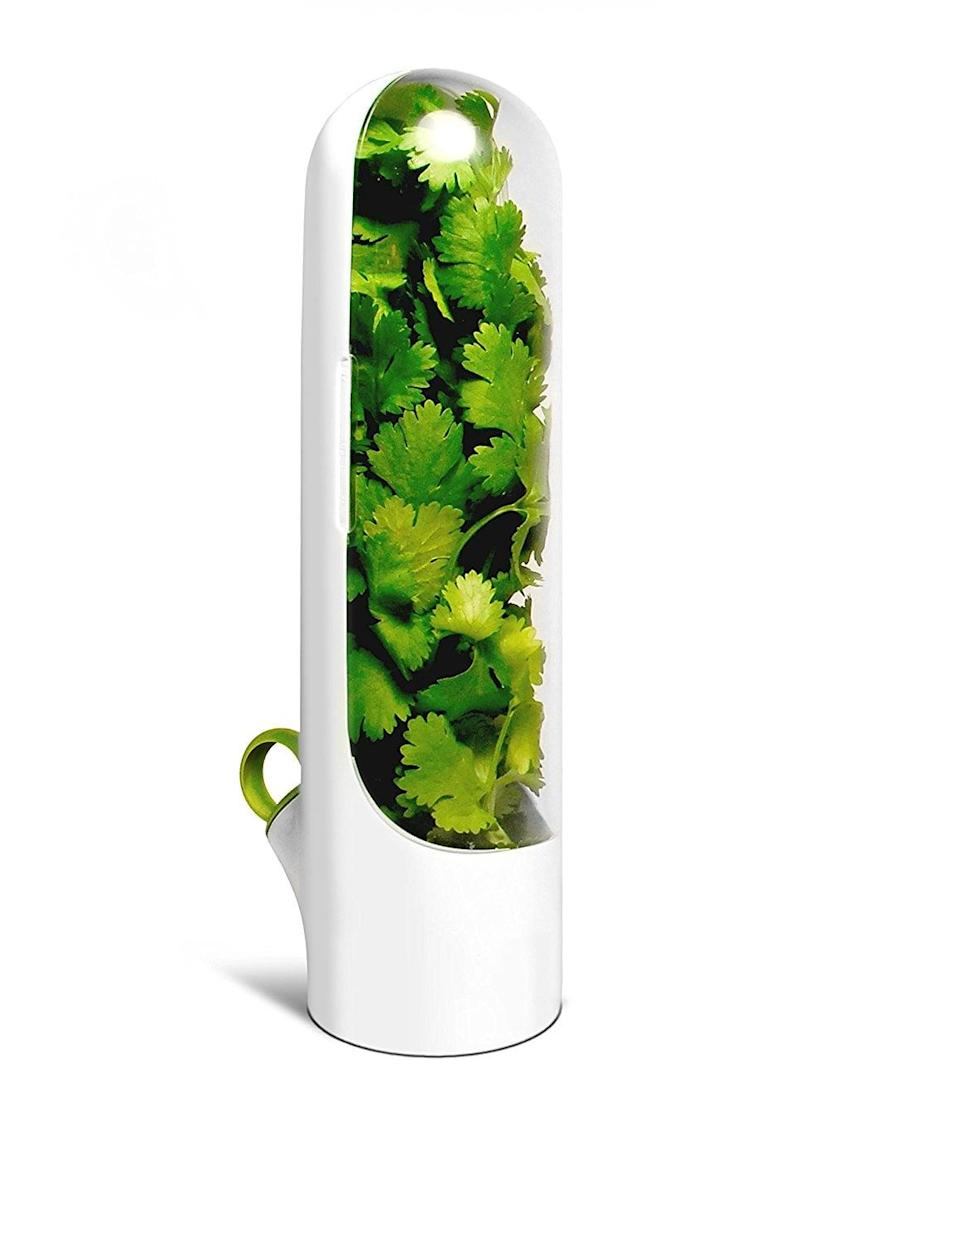 <p>Make sure your herbs stay as fresh as possible by storing them in this <span>Herb Saver Best Keeper</span> ($21). Simply refill it with water every three to five days and the herbs will last longer.</p>